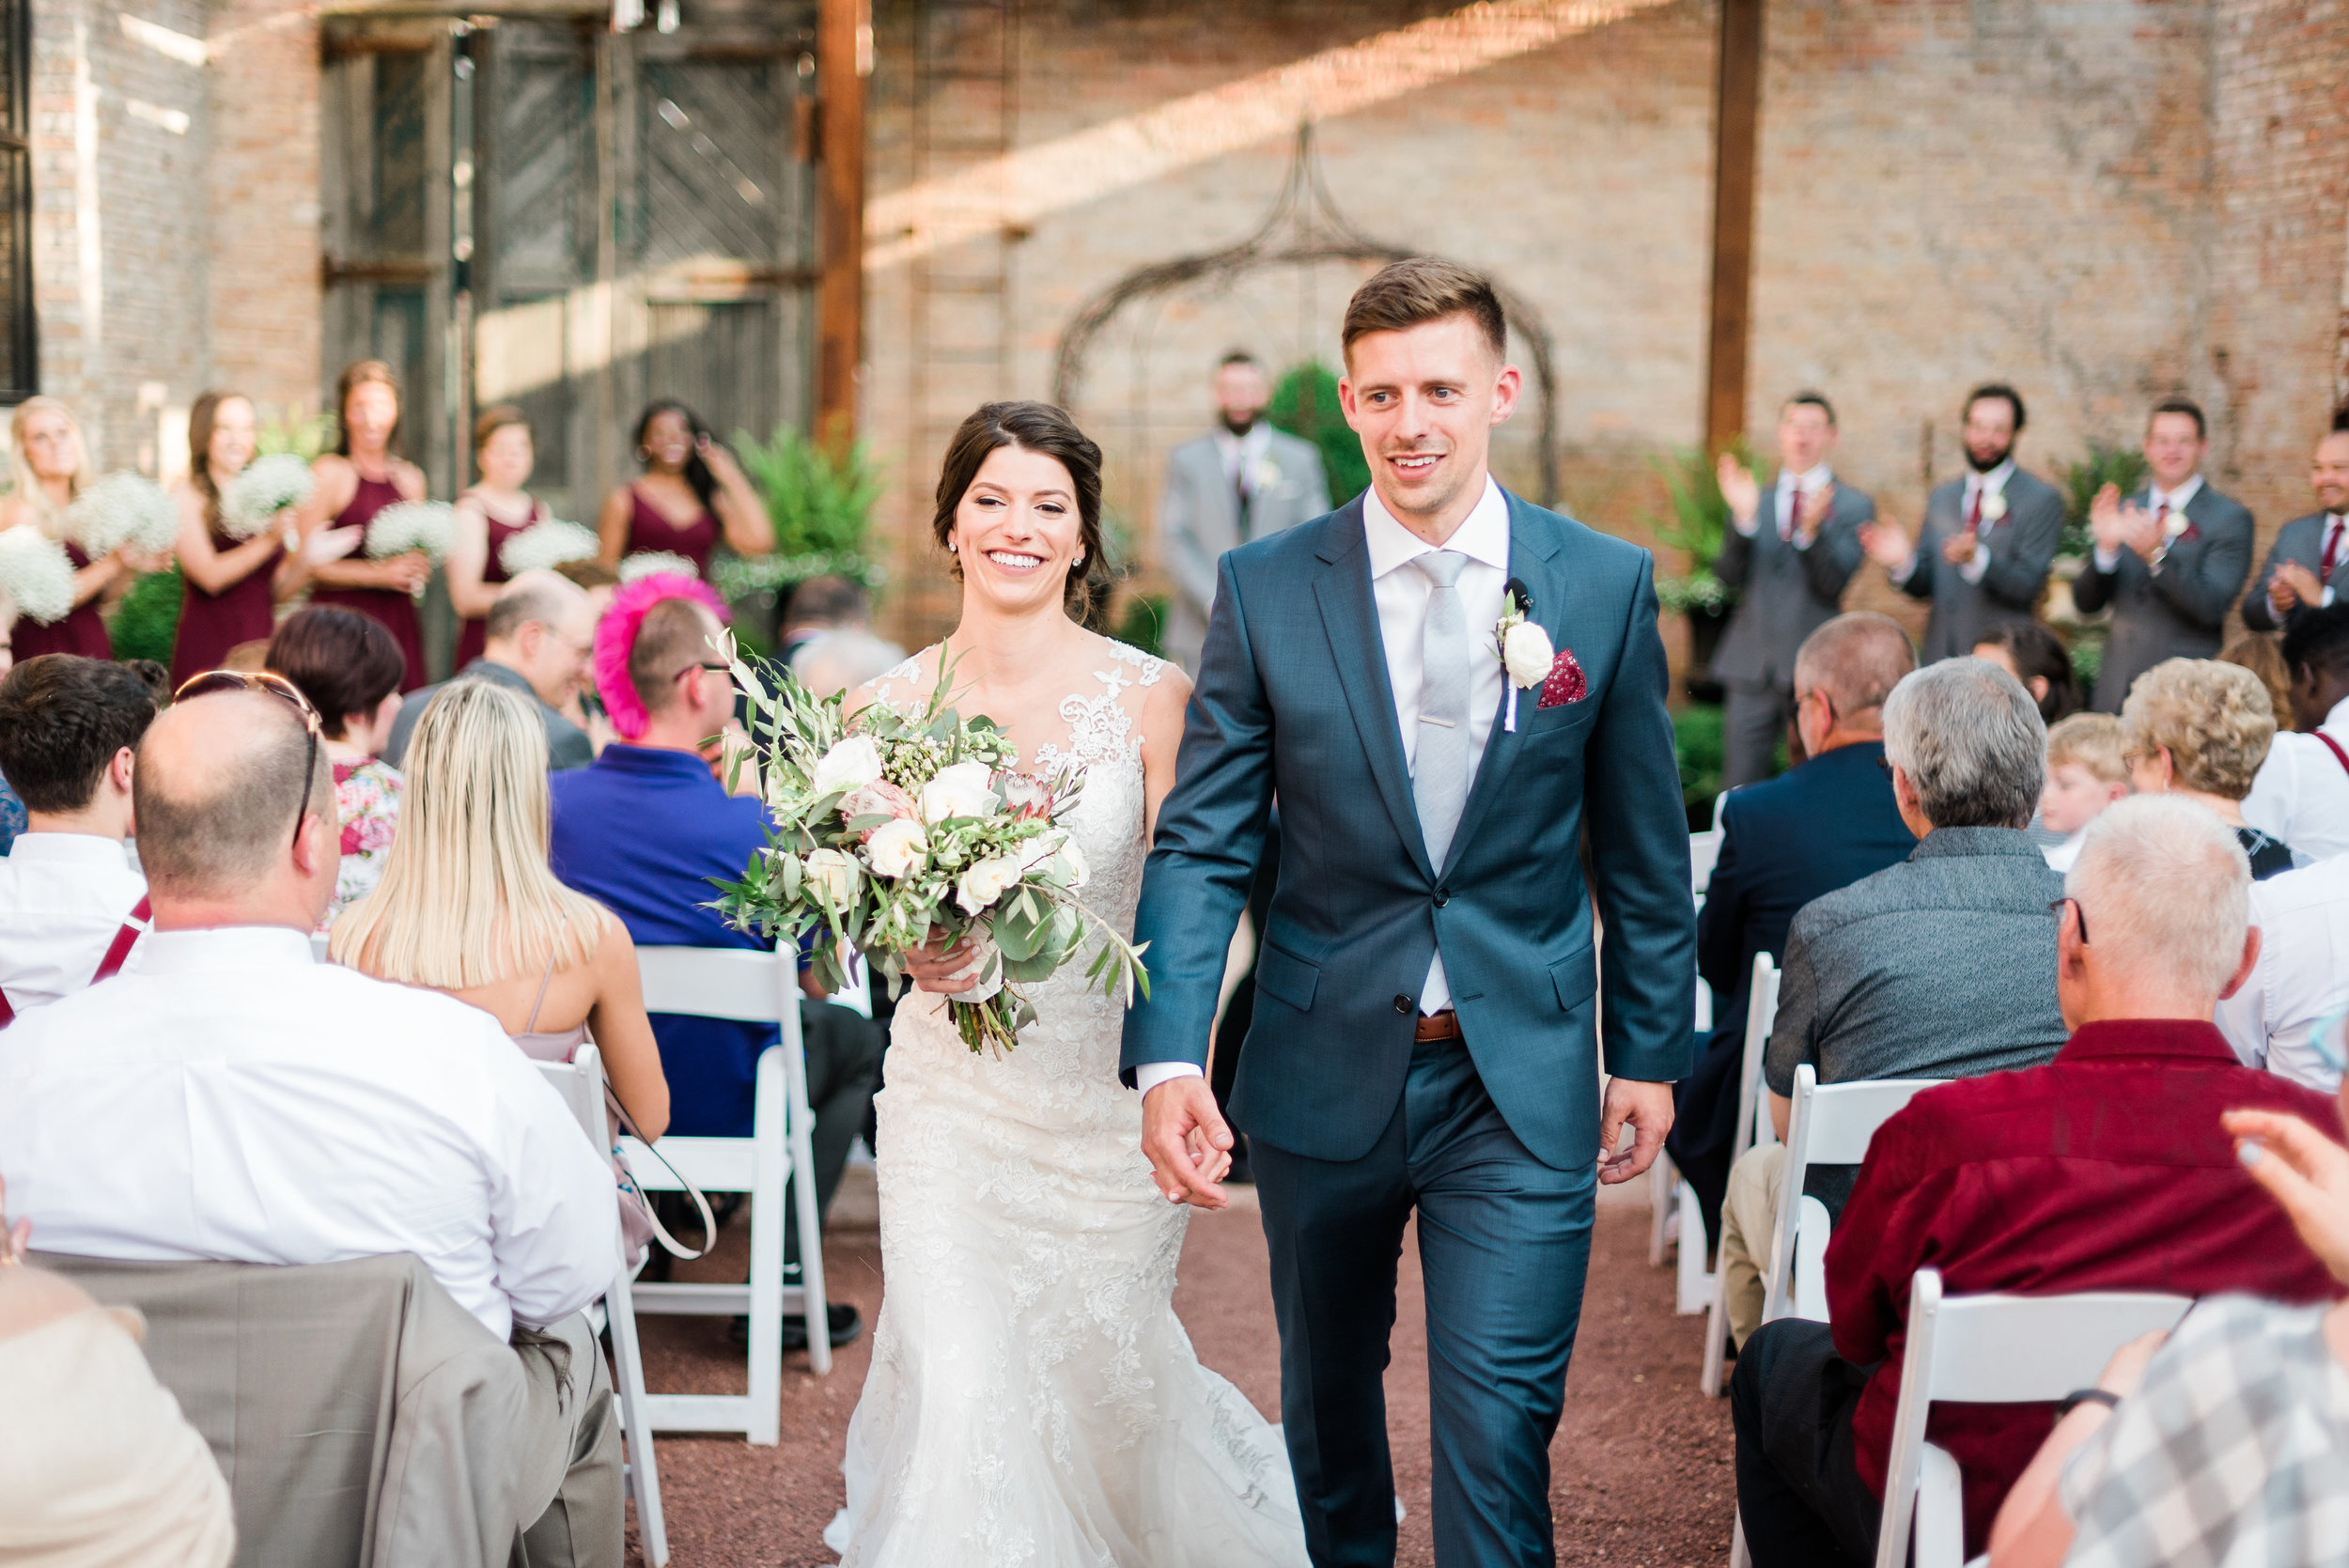 Maggie &Brad - Sycamore, ILVenue: Blumen GardensPhotographer: Danielle Heinson PhotographyGuest Count: 185Vibe: RomanticBest part of our wedding? Our venue!